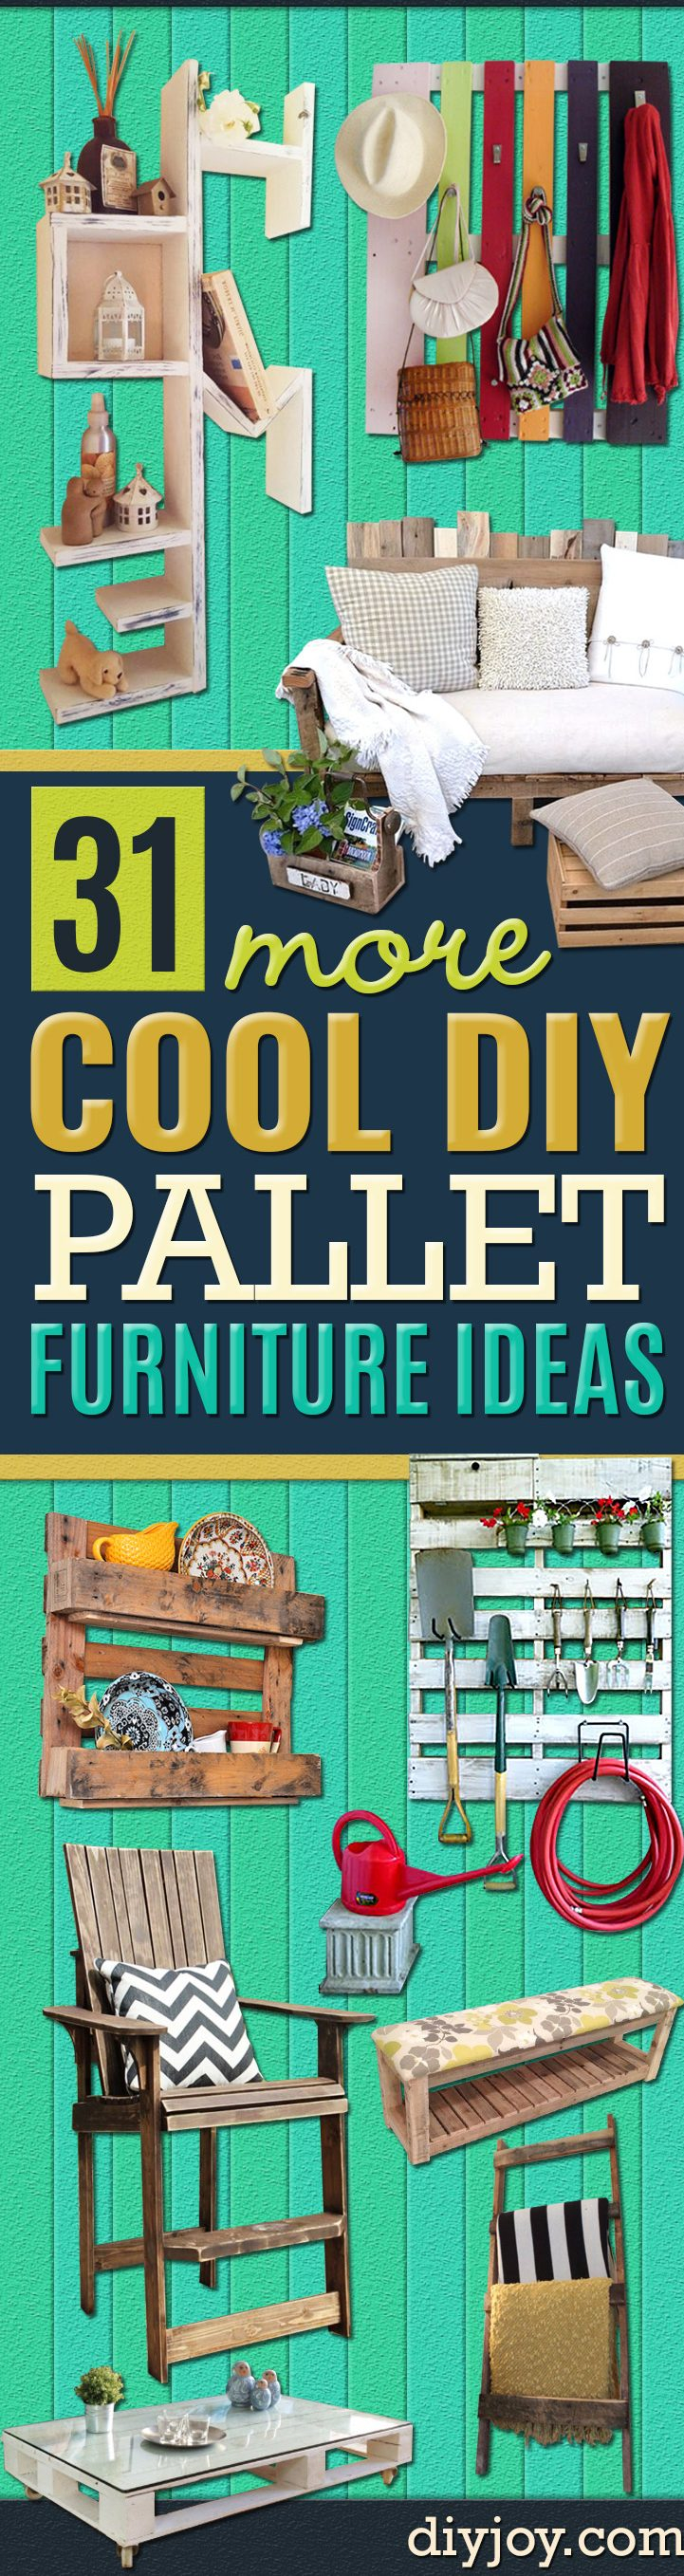 Best DIY Pallet Furniture Ideas - Cool Pallet Tables, Sofas, End Tables, Coffee Table, Bookcases, Wine Rack, Beds and Shelves - Rustic Wooden Pallet Furniture Made Easy With Step by Step Tutorials - Quick DIY Projects and Crafts by DIY Joy